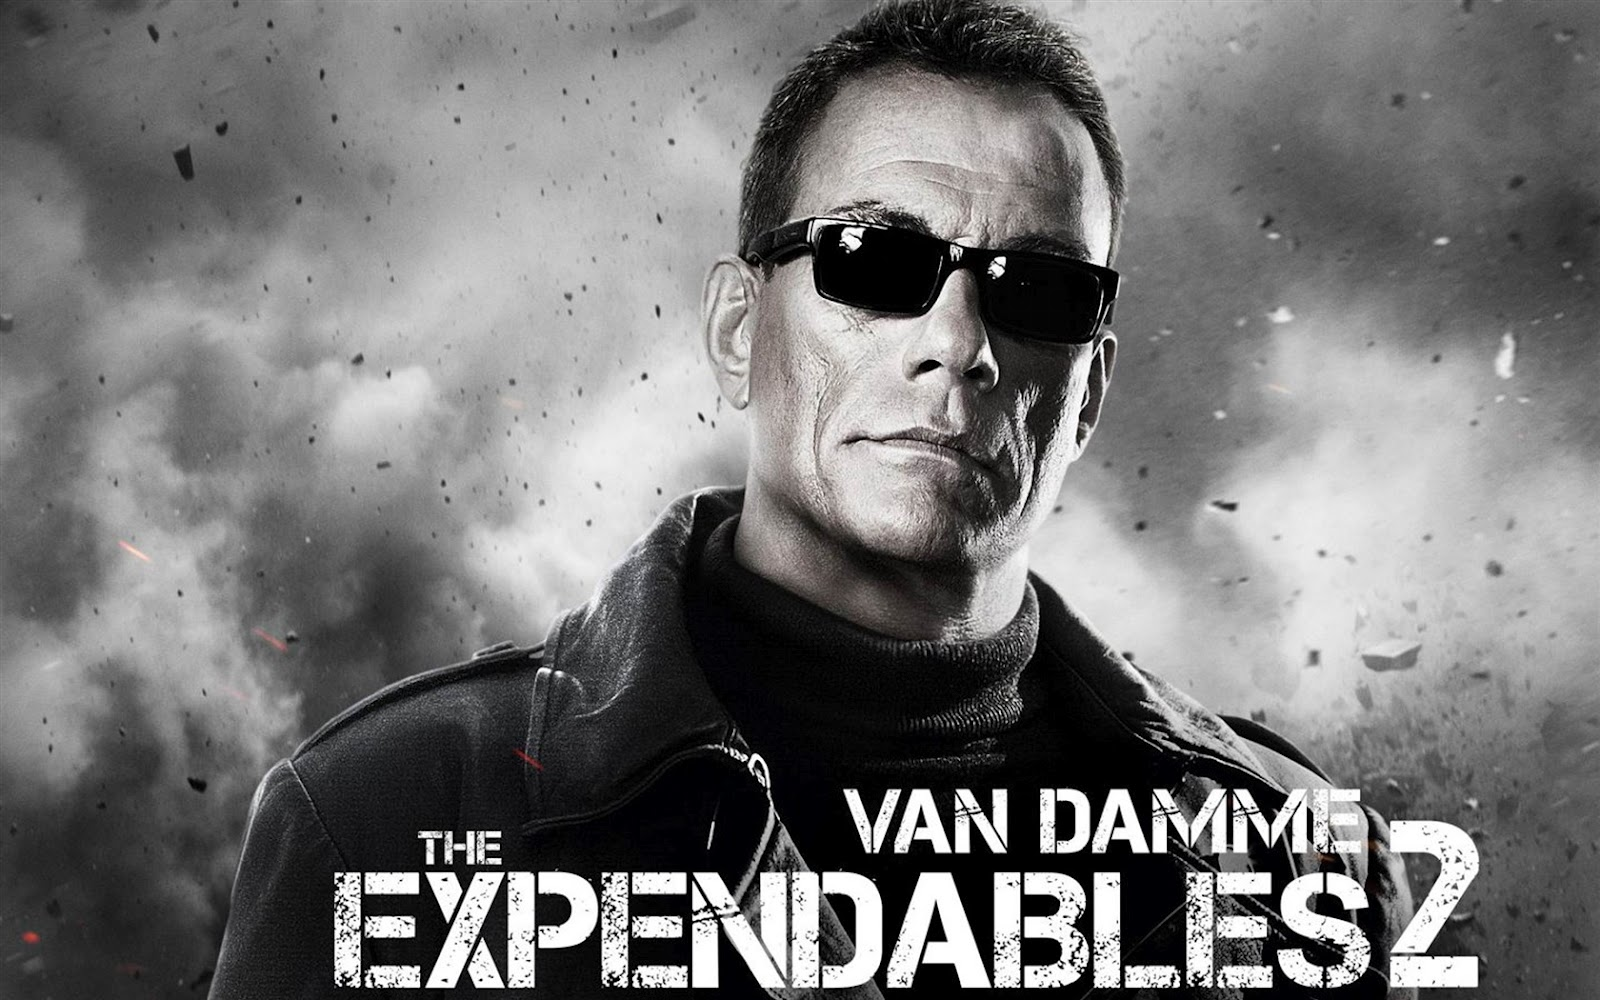 http://4.bp.blogspot.com/-O48aPspKePM/T_WrcRmnz9I/AAAAAAAAB9c/f5Ipg6dEinI/s1600/Van_Damme-The_Expendables_2_HD_Movie_Wallpaper_1680x1050.jpg